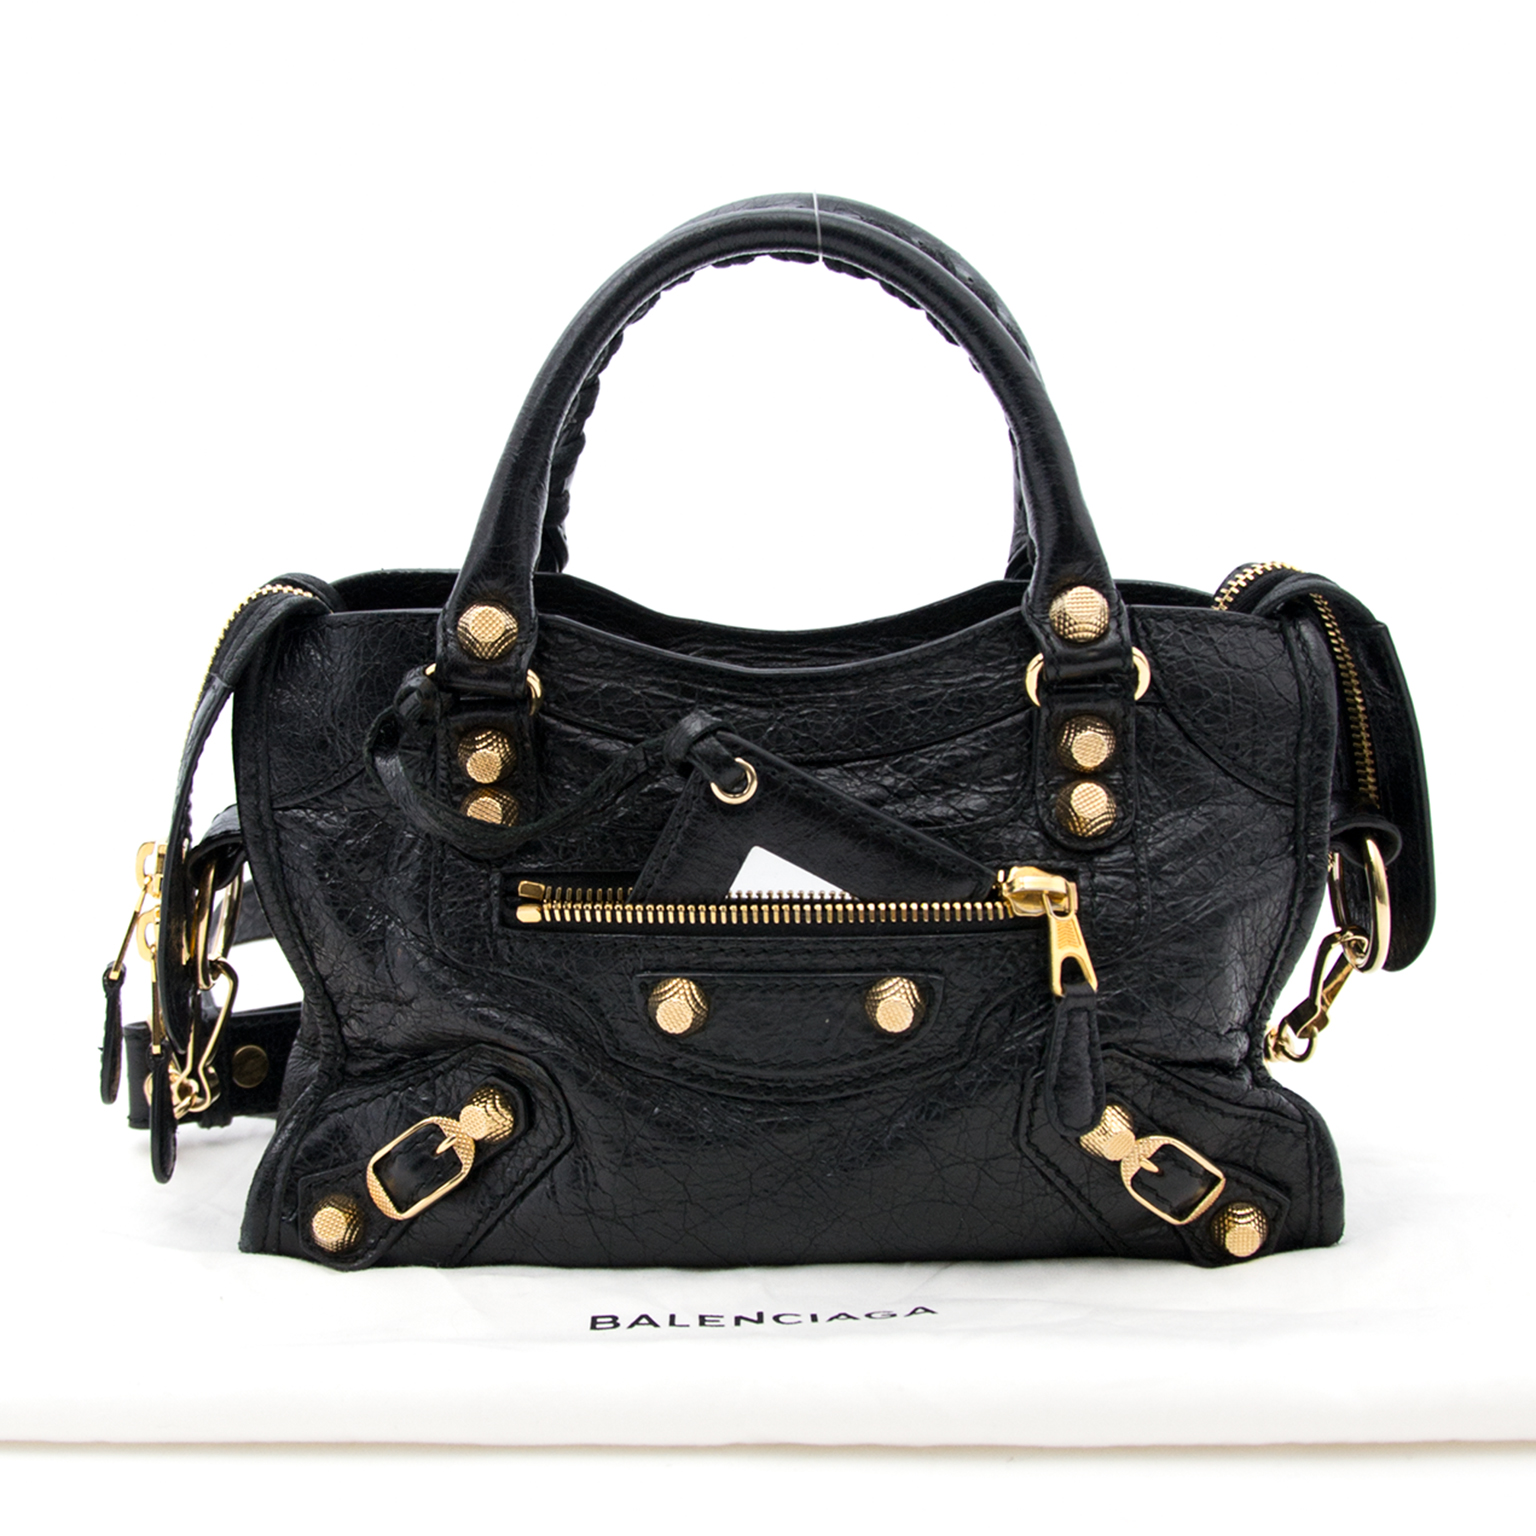 a40380cc8e2 Buy and sell your preloved designer bags for the best rates online at Labellov  luxury Koop authentieke Balenciaga handtassen bij Labellov.com